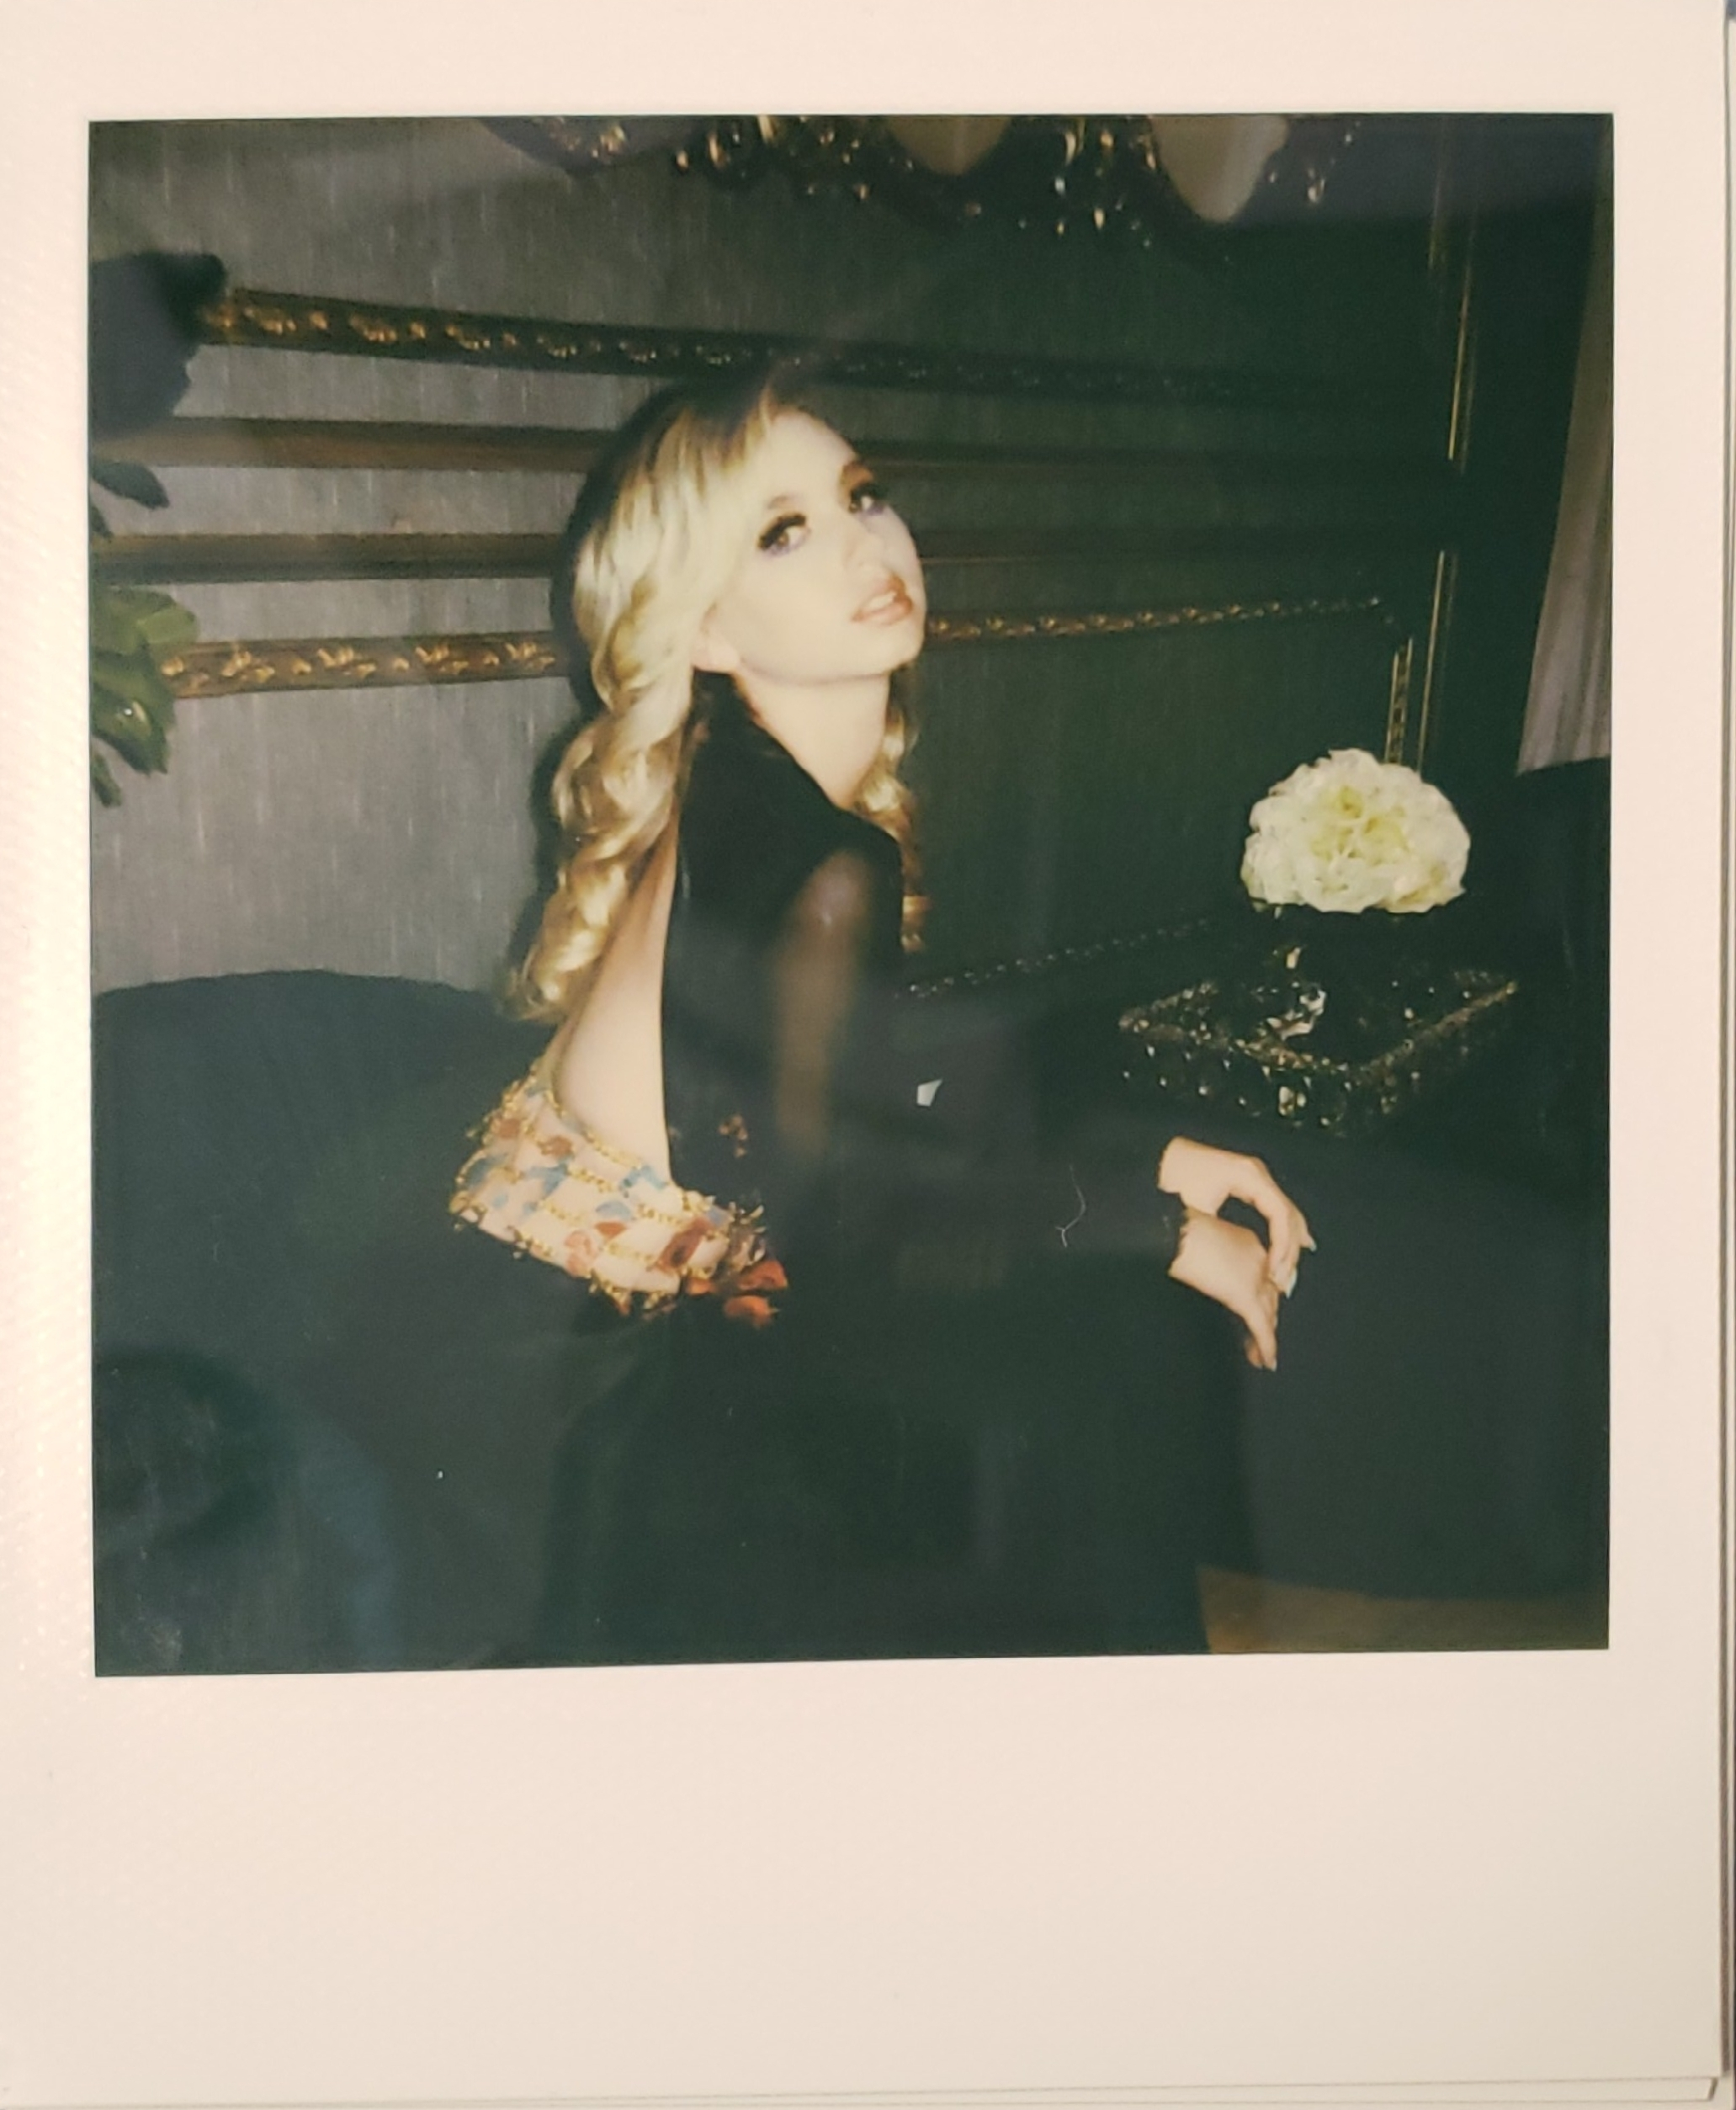 #polaroidoriginal of Lilia Buckinham Photographer: Heather Koepp